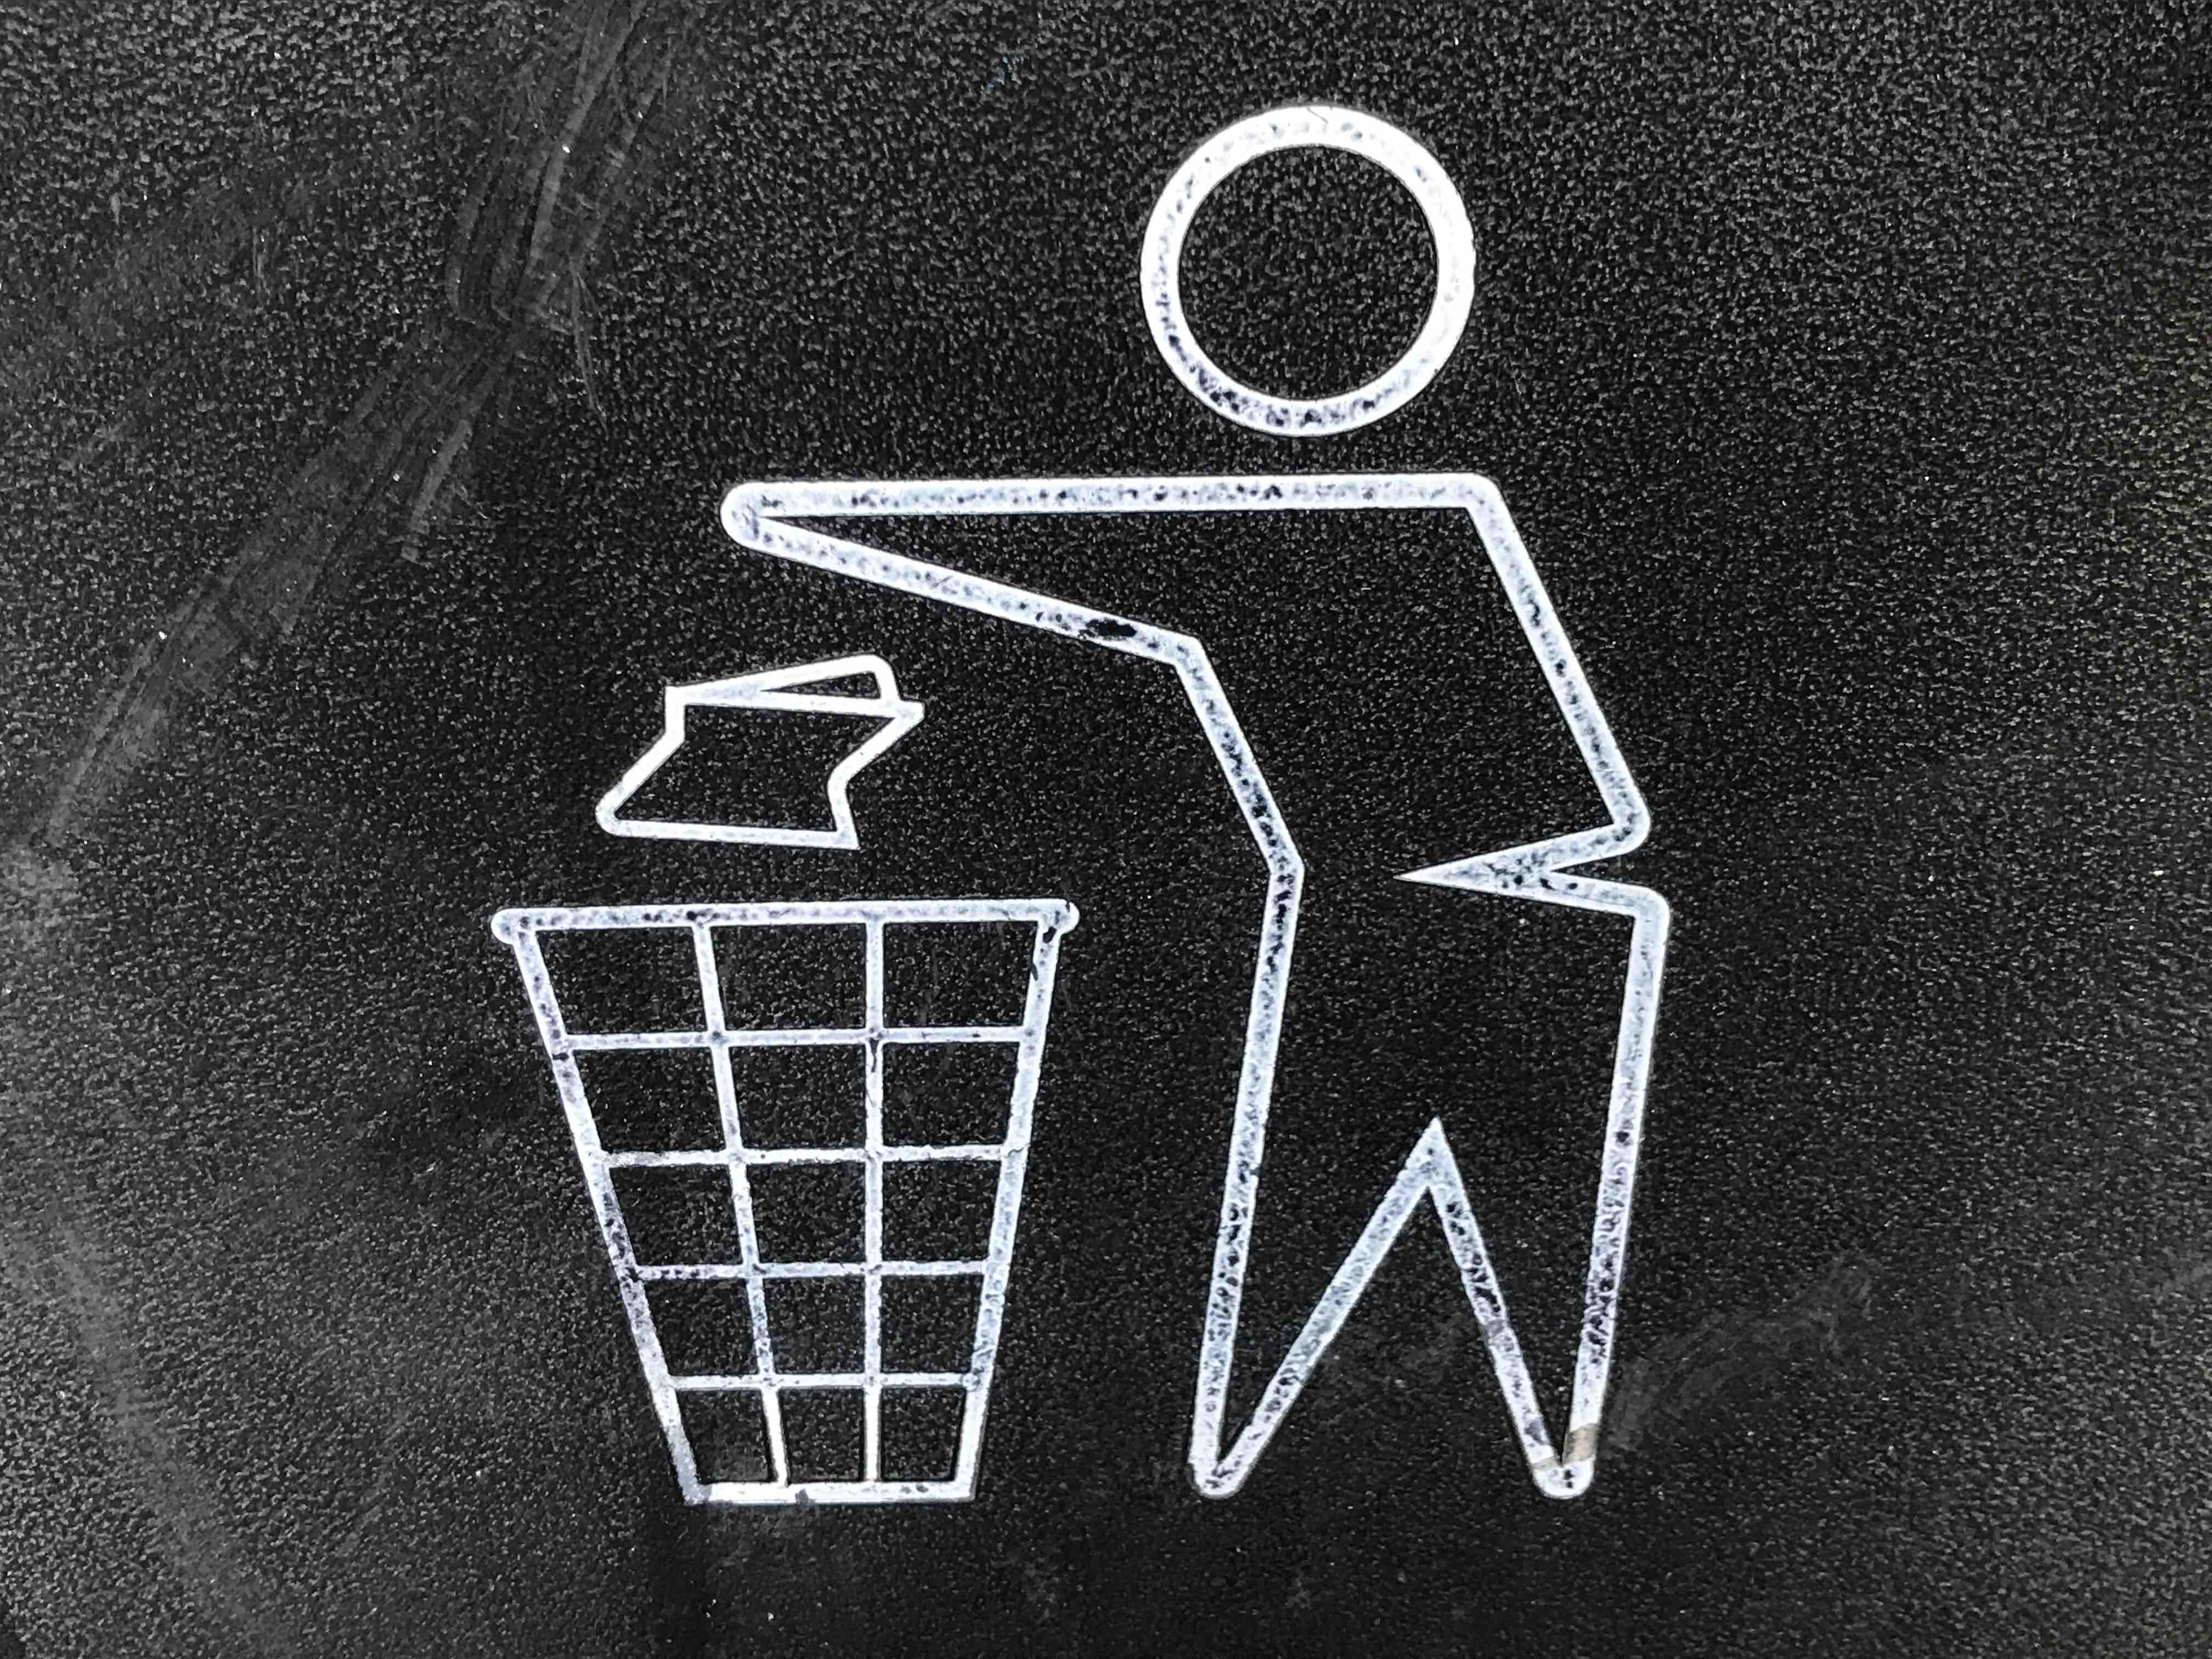 A chalk drawing of a person throwing garbage into a basket.